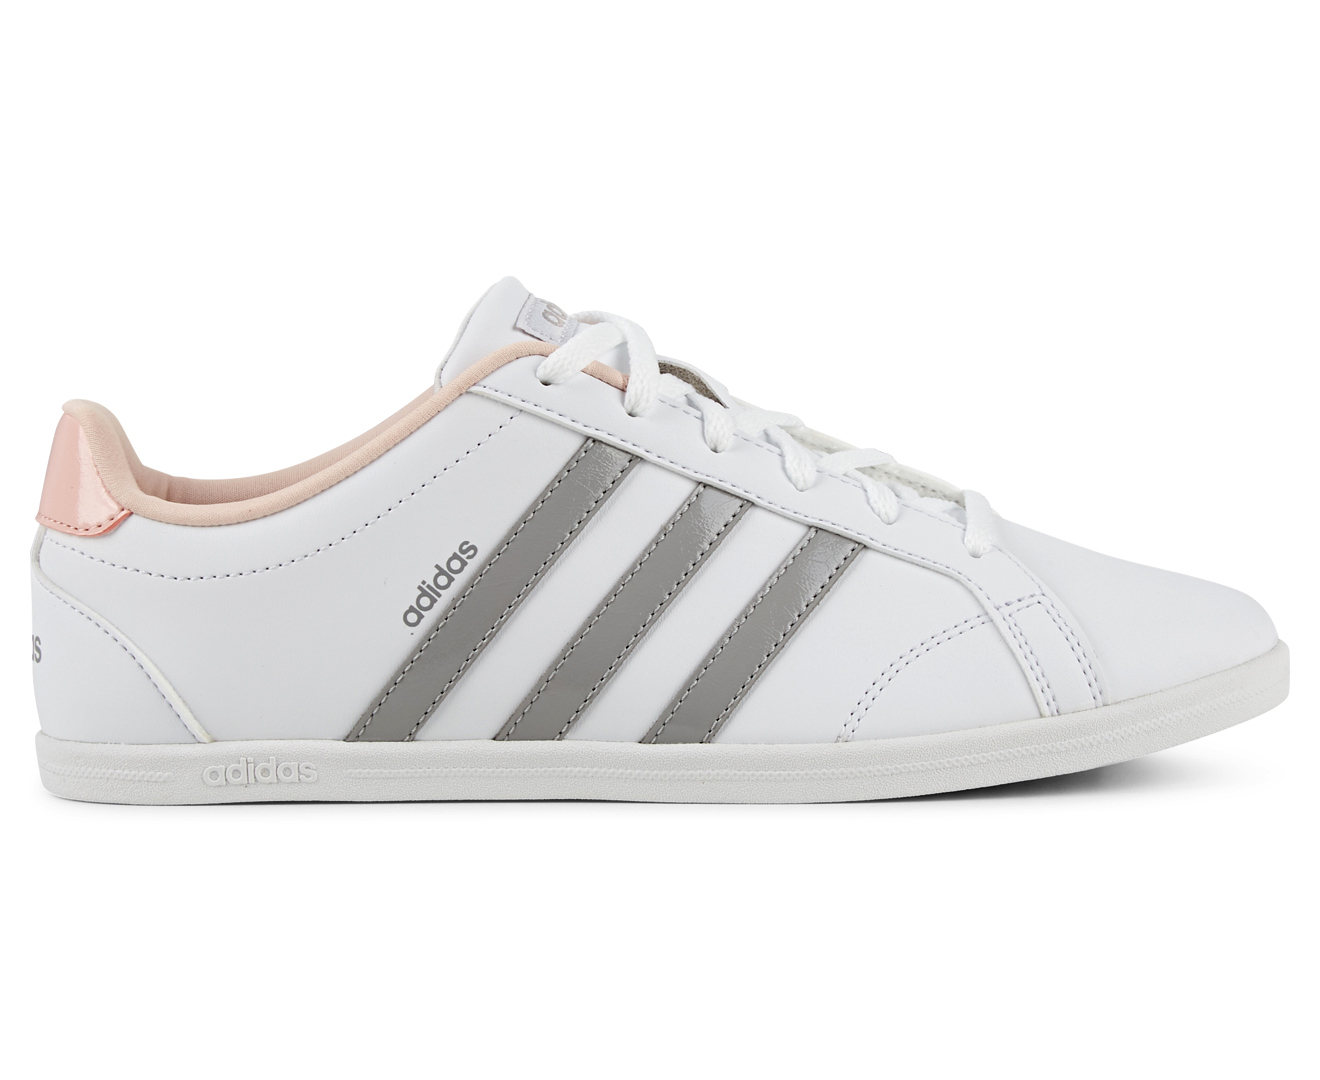 Adidas Women S Vs Coneo Qt Shoe White Grey